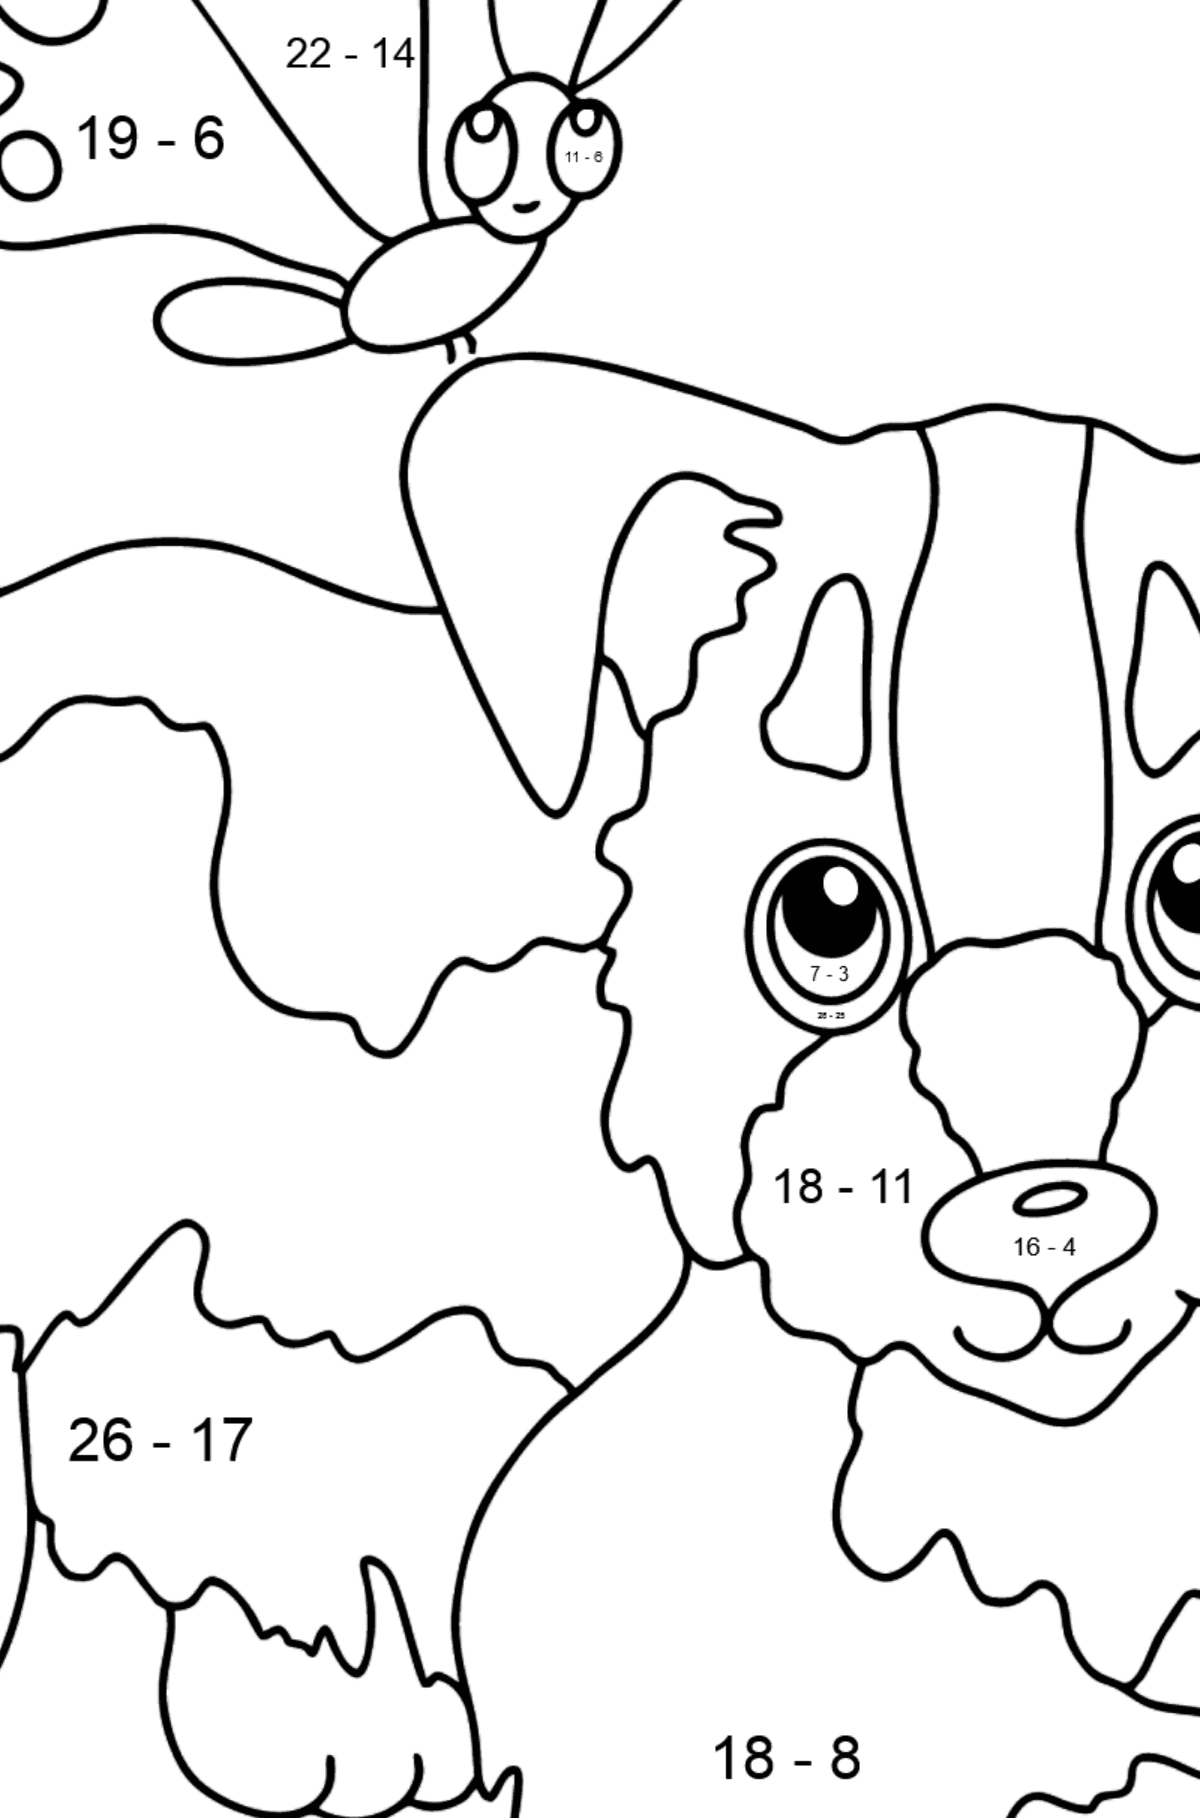 Coloring Page - A Dog is Playing with a Beautiful Butterfly - Math Coloring - Subtraction for Kids